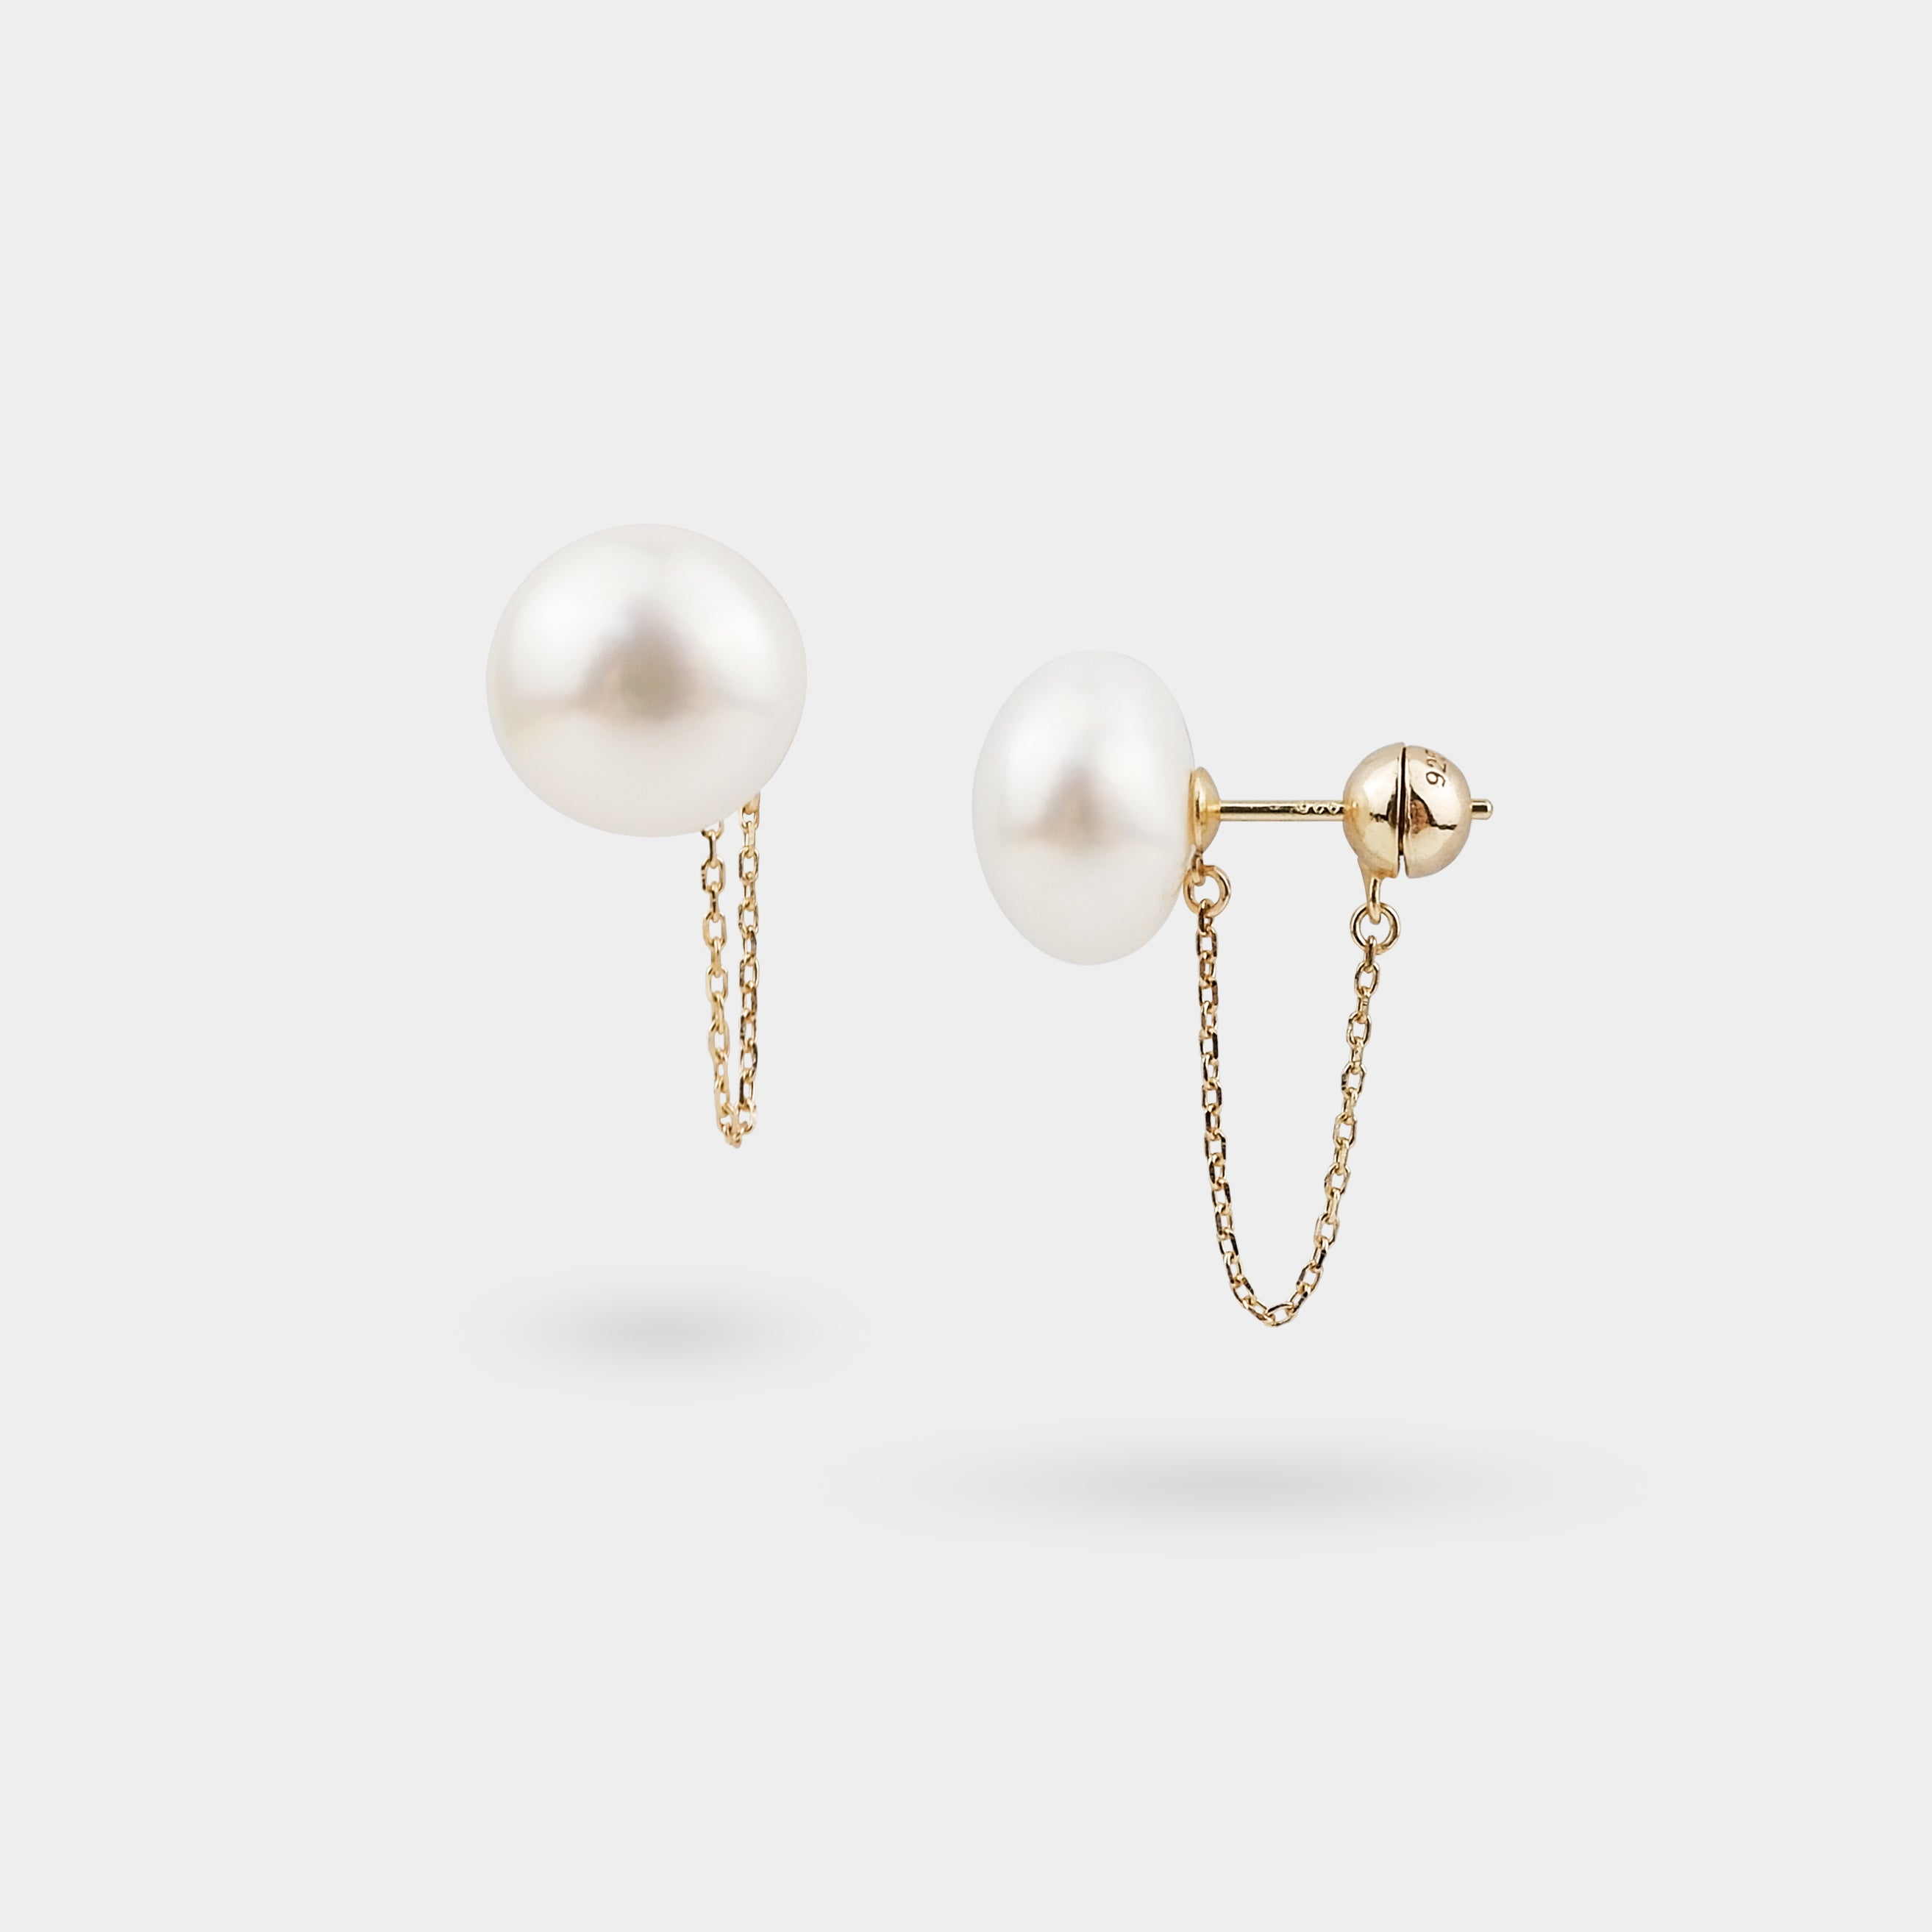 OILLE PEARL CHAIN EARRINGS